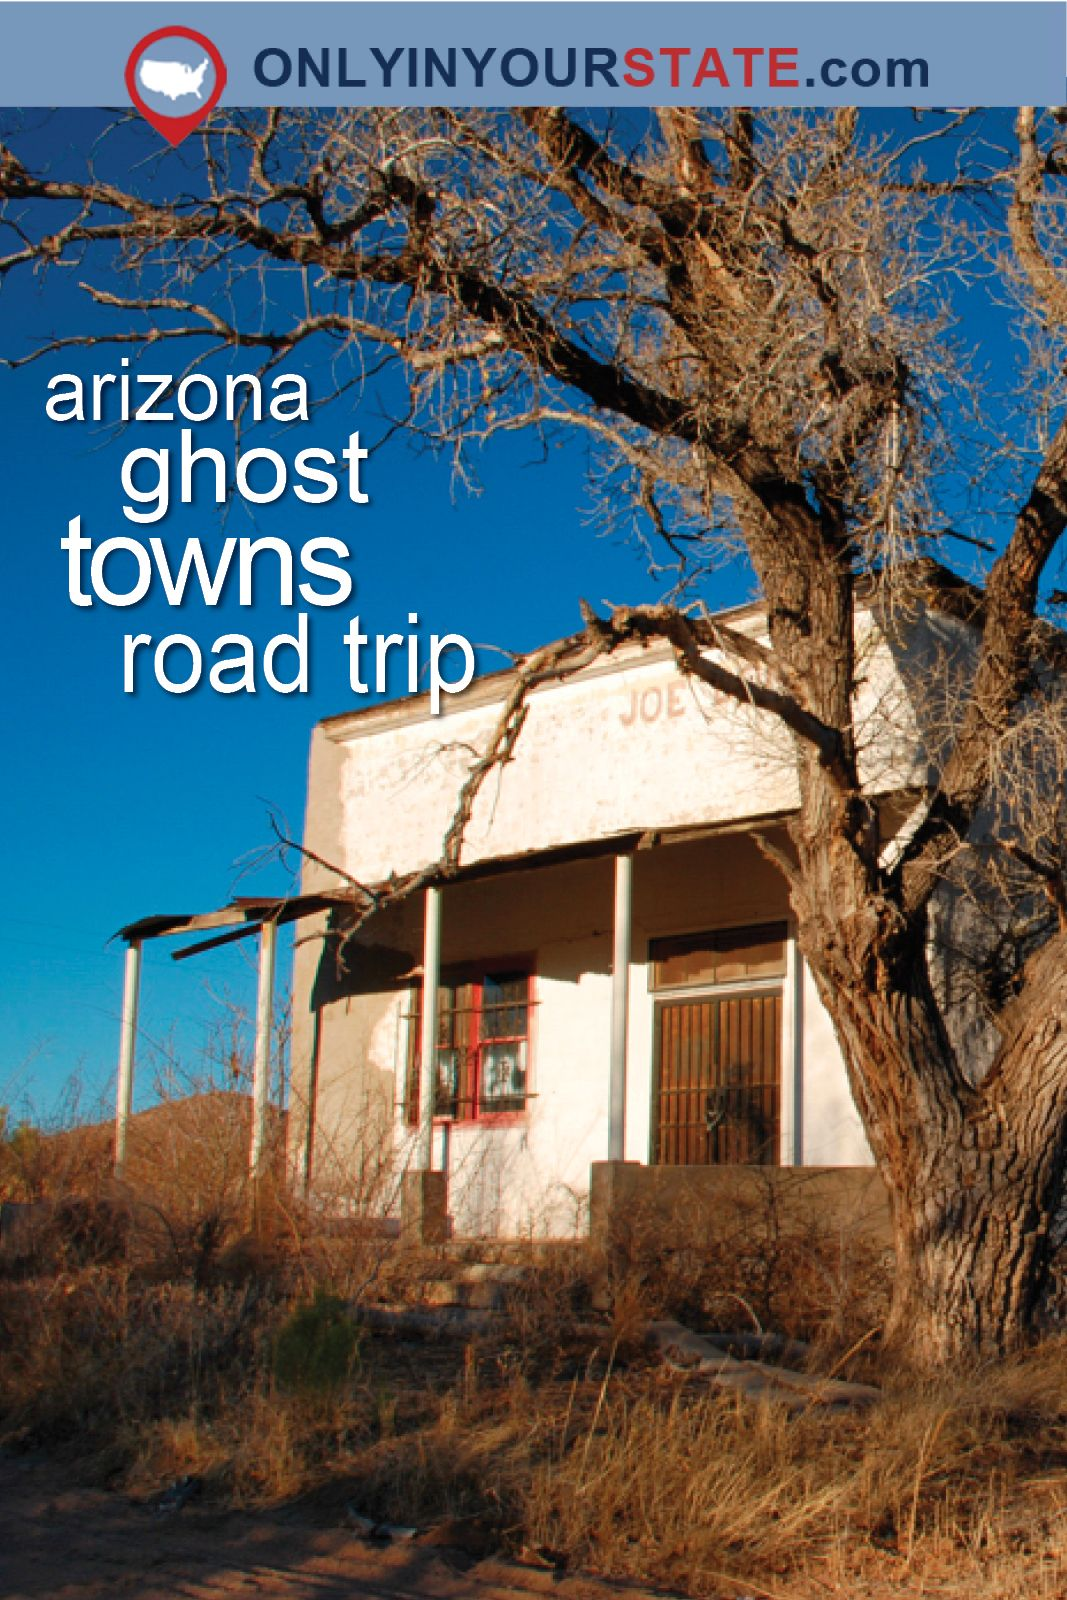 This Haunting Road Trip Through Arizona Ghost Towns Is One